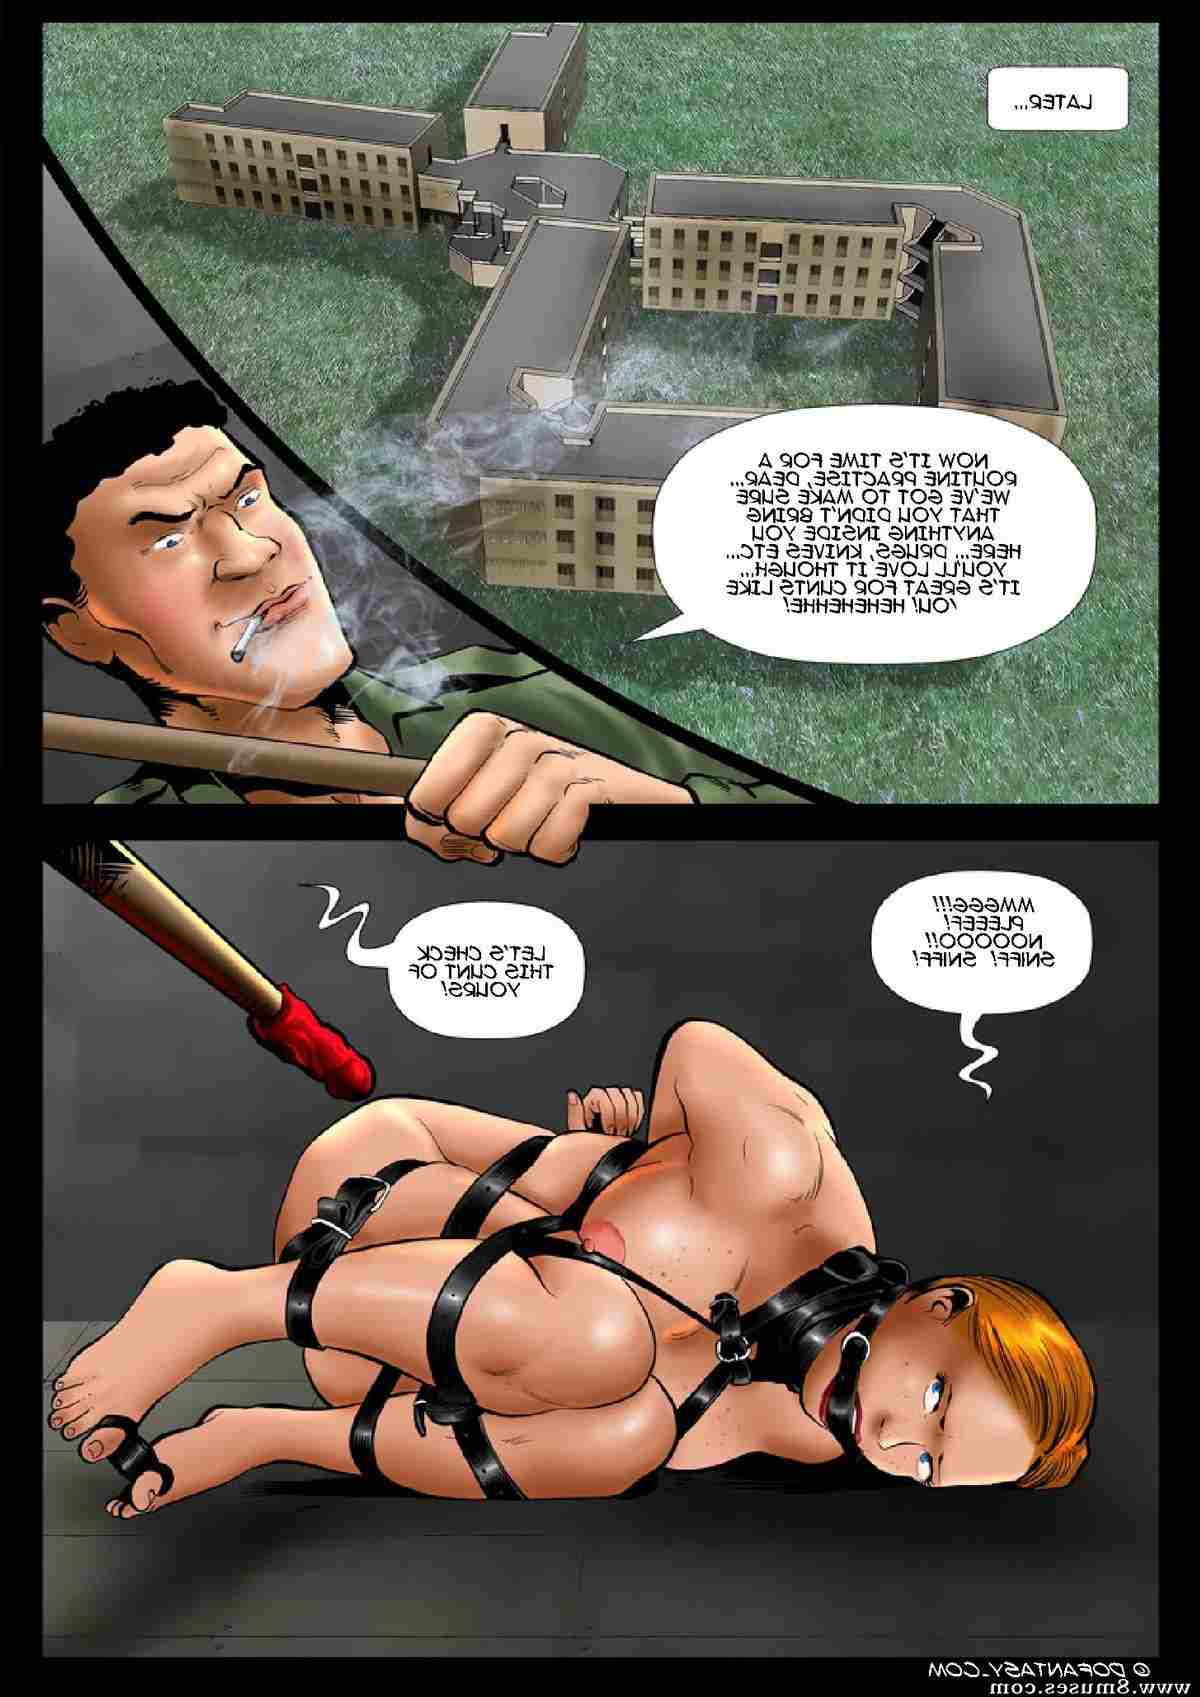 Fansadox-Comics/401-500/Fansadox-413-A-Bold-Officer-Cagri Fansadox_413_-_A_Bold_Officer_-_Cagri__8muses_-_Sex_and_Porn_Comics_15.jpg